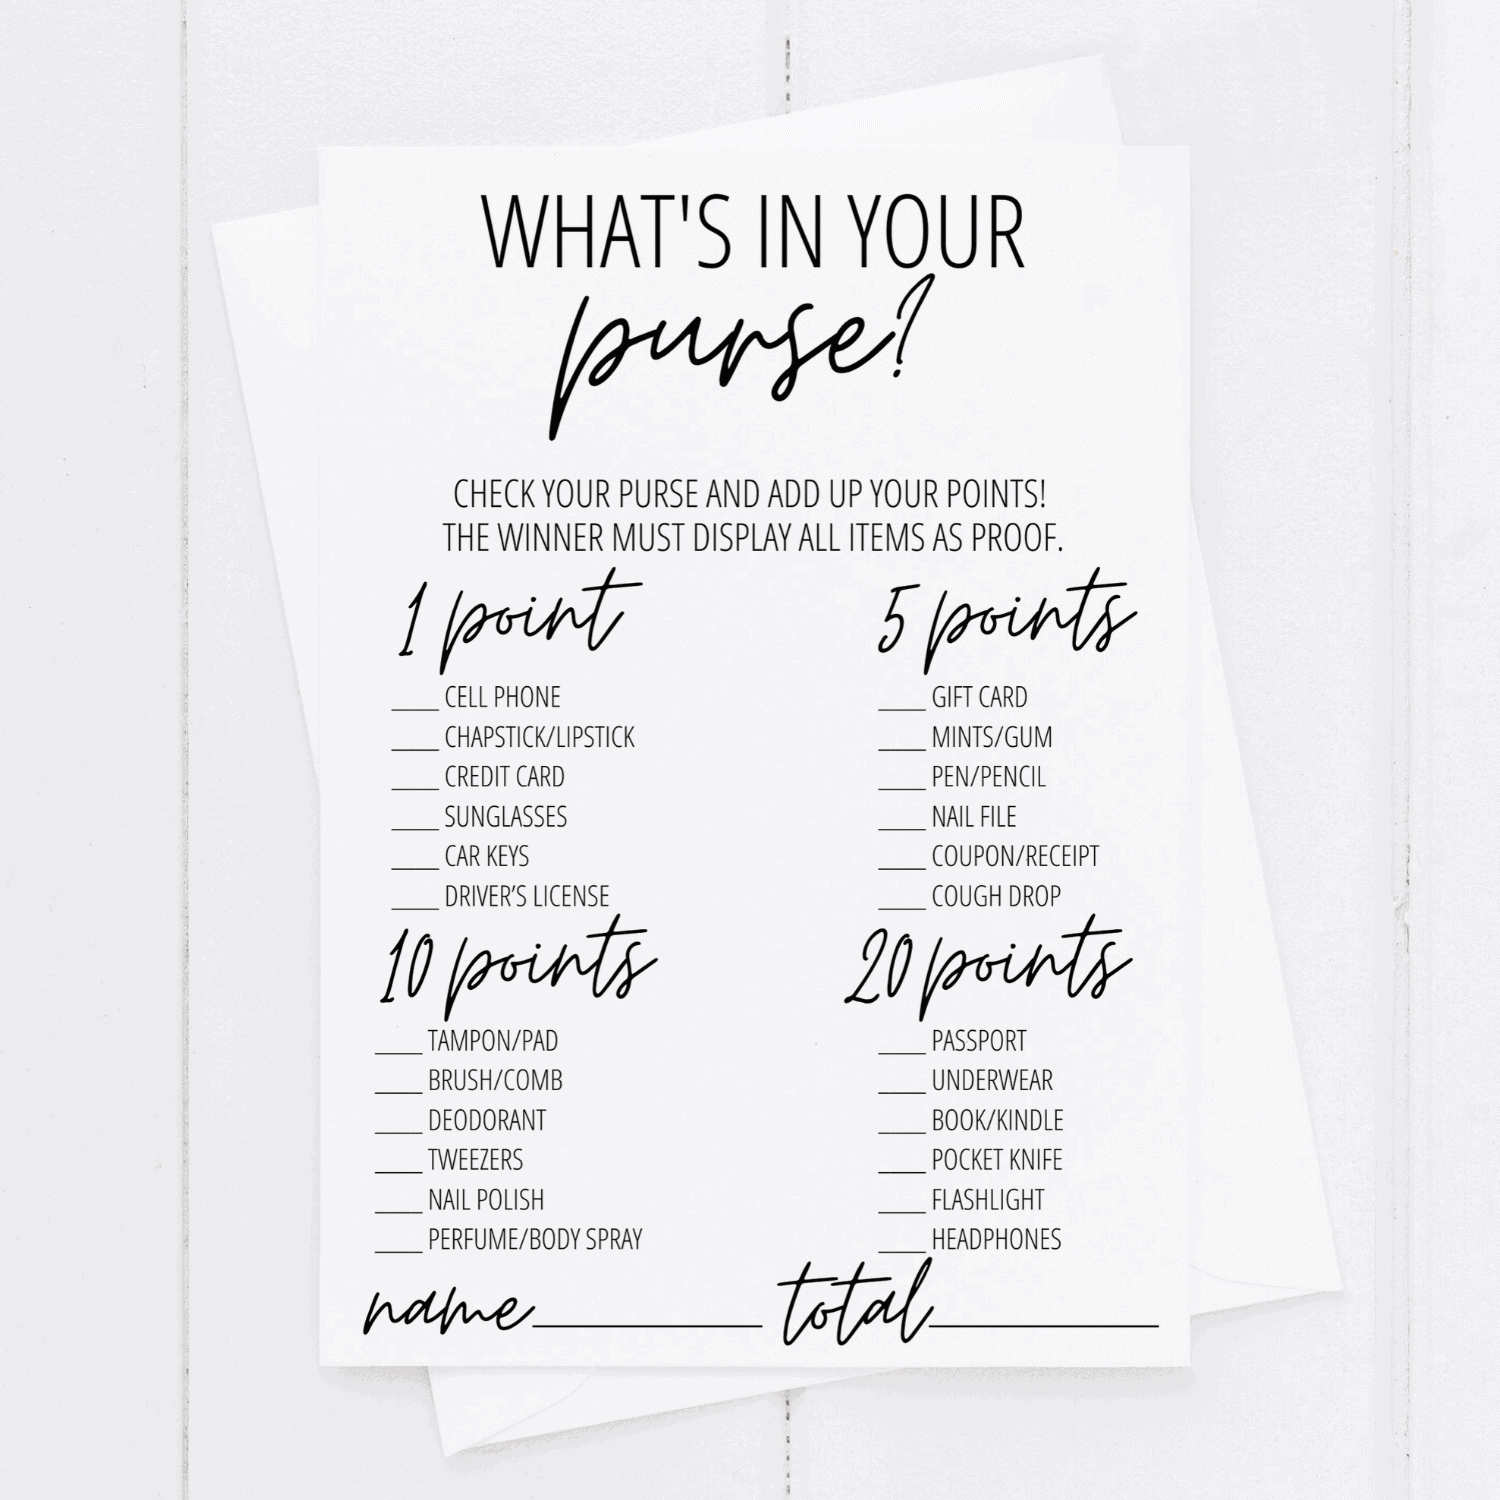 whats in your purse bridal shower game printable